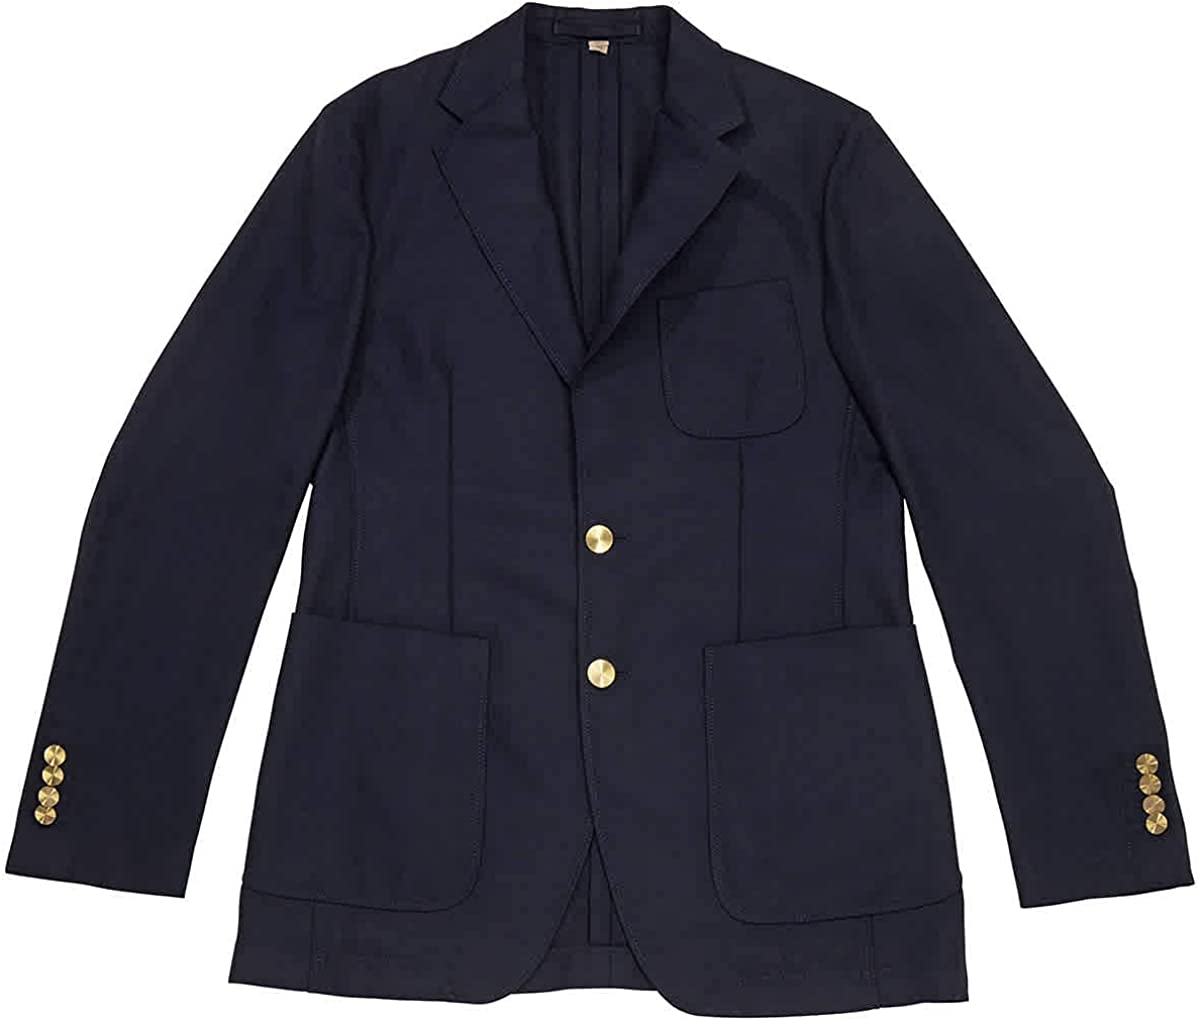 BURBERRY Men's Navy Stirling Wool Jacket, Brand Size 46R (US Size 36)